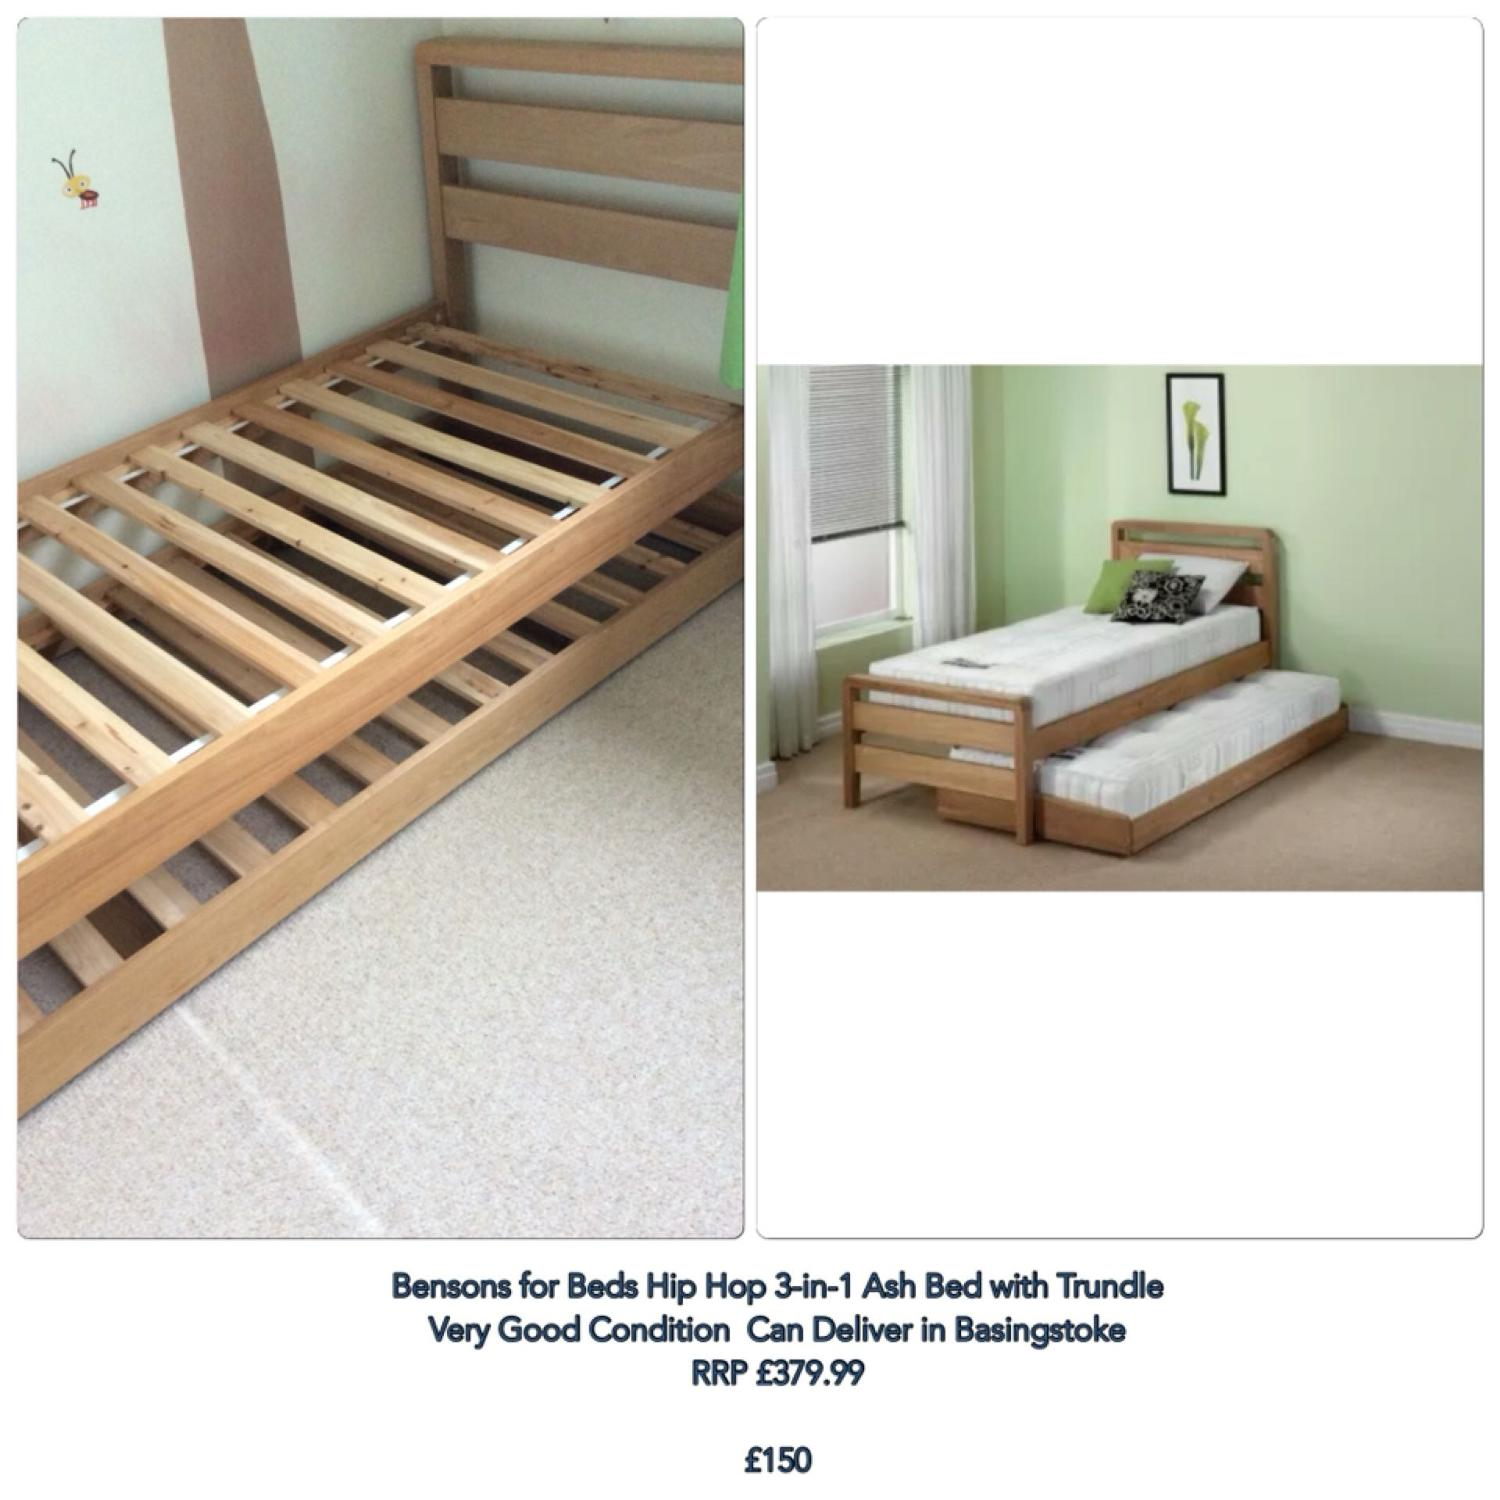 Benson For Beds Hip Hop 3 In 1 Solid Wood Bed With Trundle Single To Superking